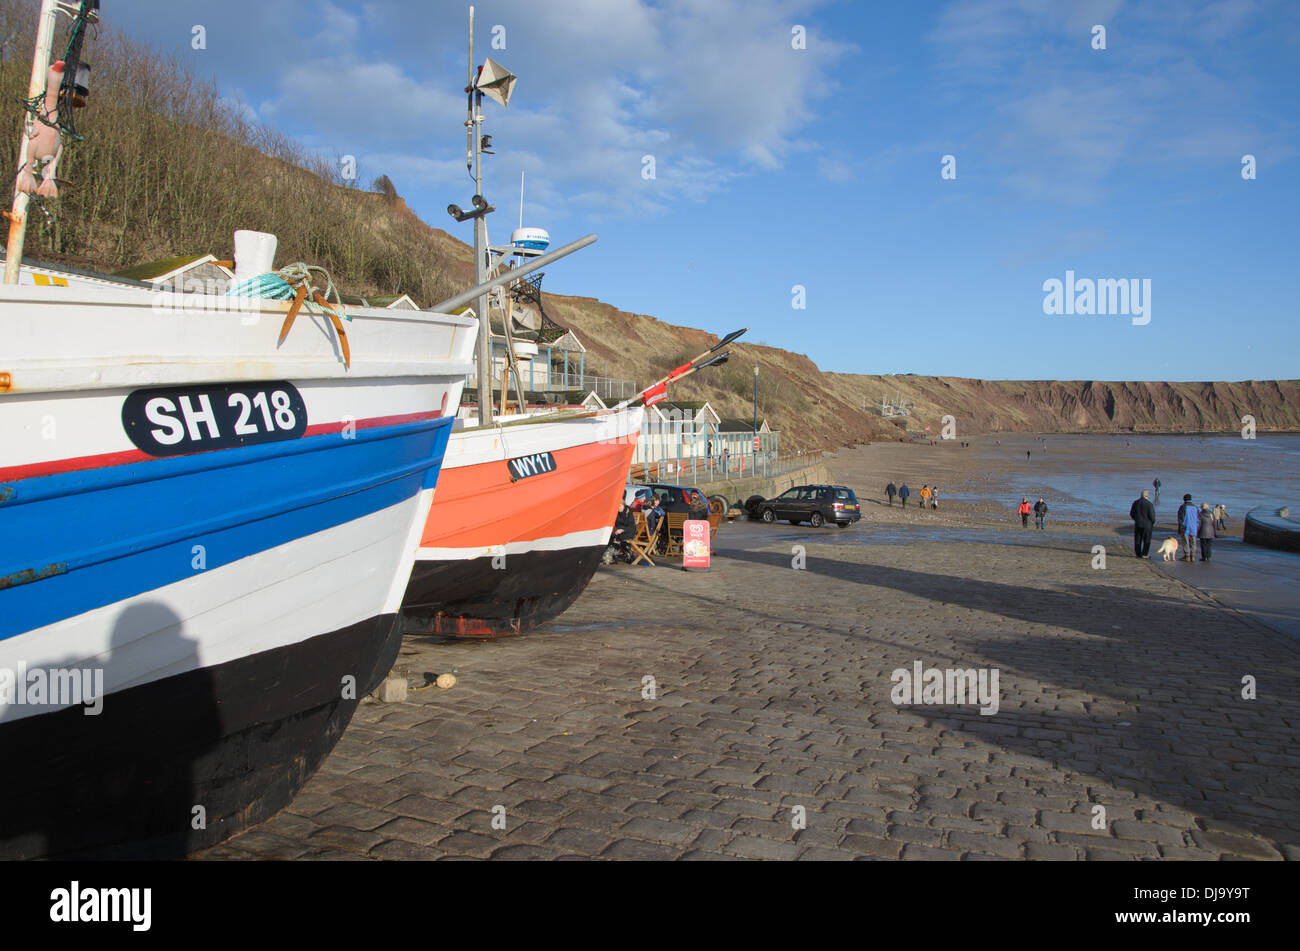 Inshore traditional fishing boats known as cobles on the slipway at the coastal seaside resort of Filey Stock Photo